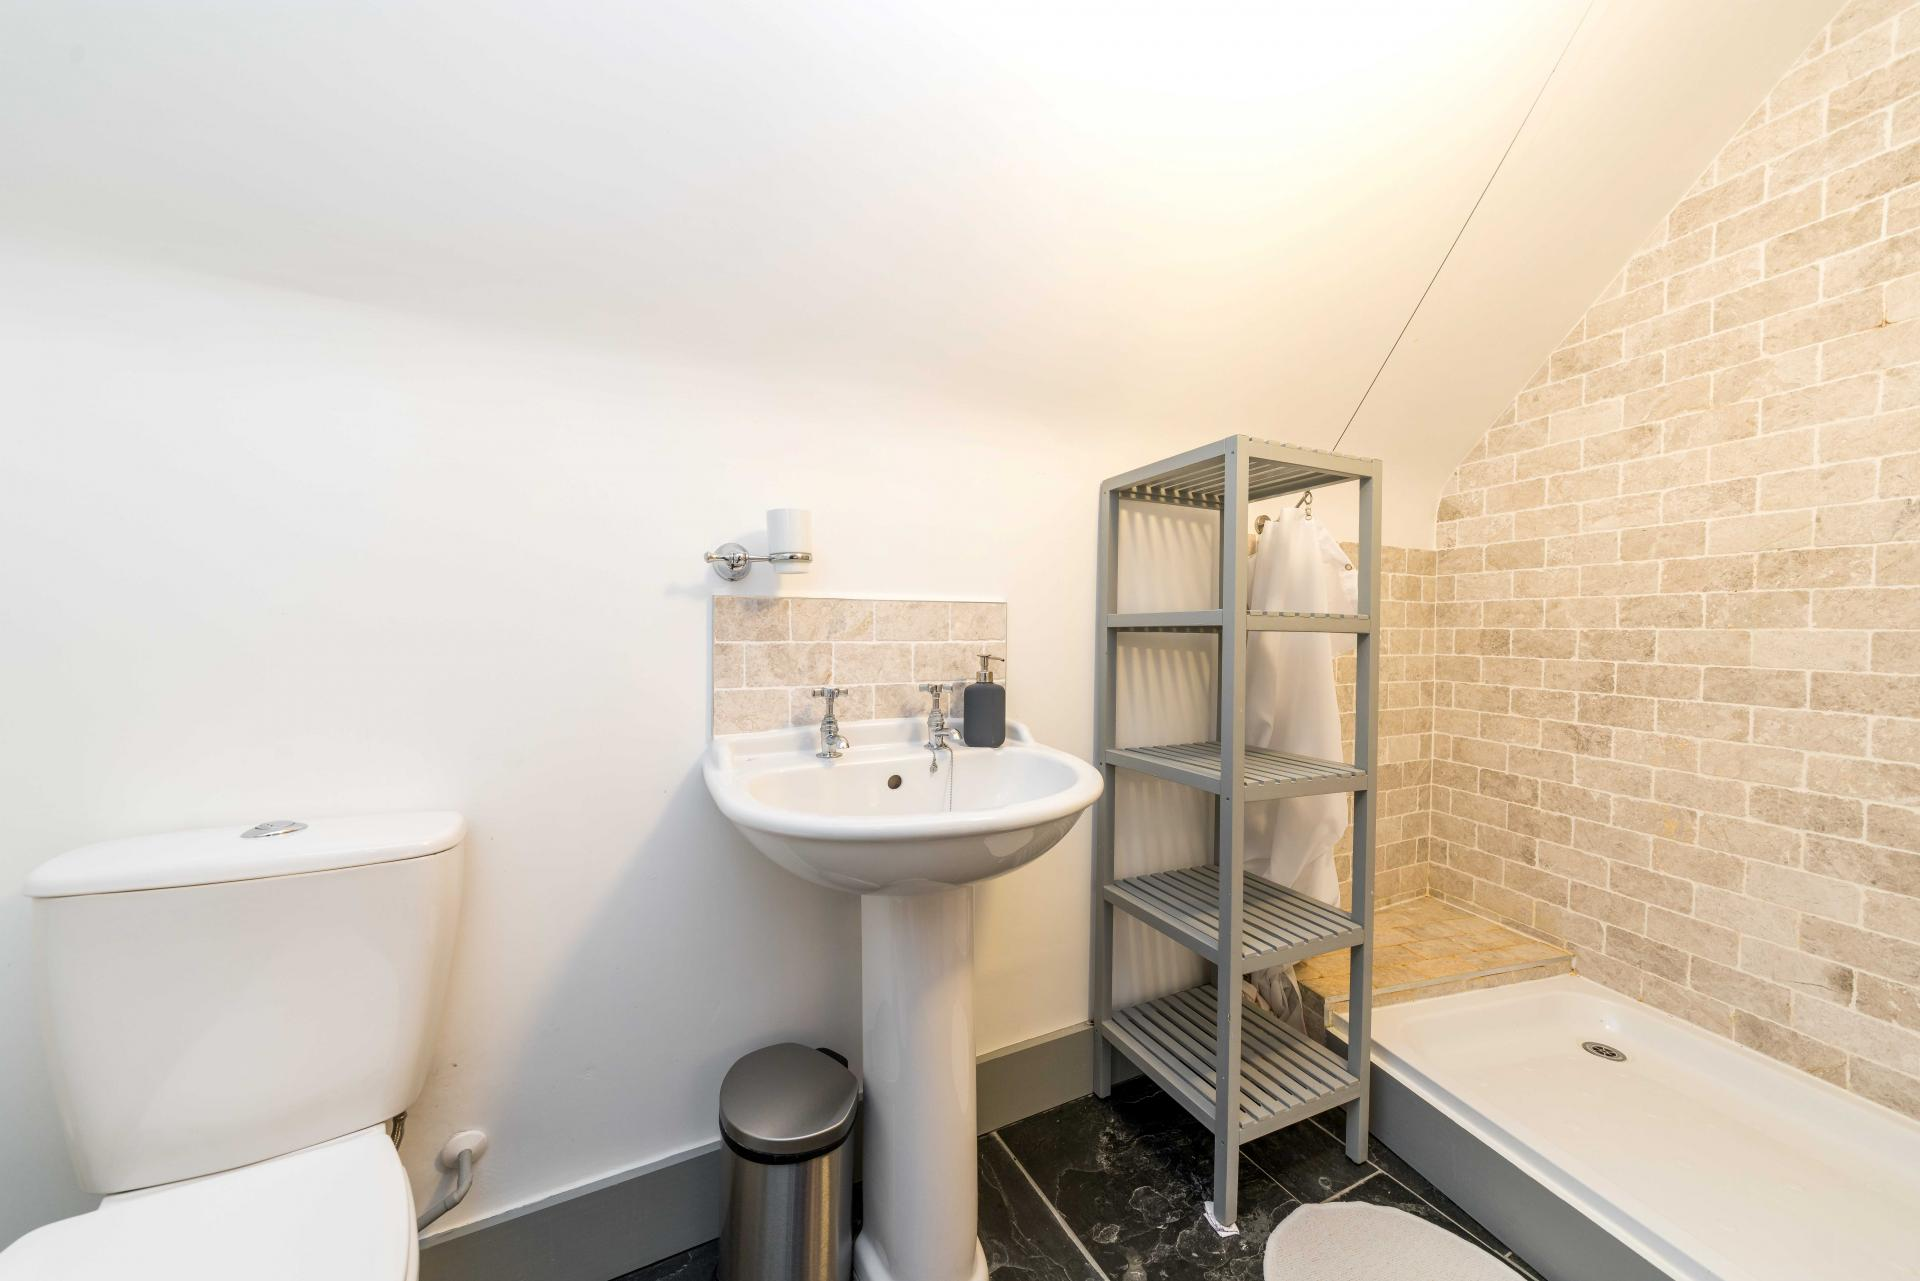 En-Suite area at Stowfield House